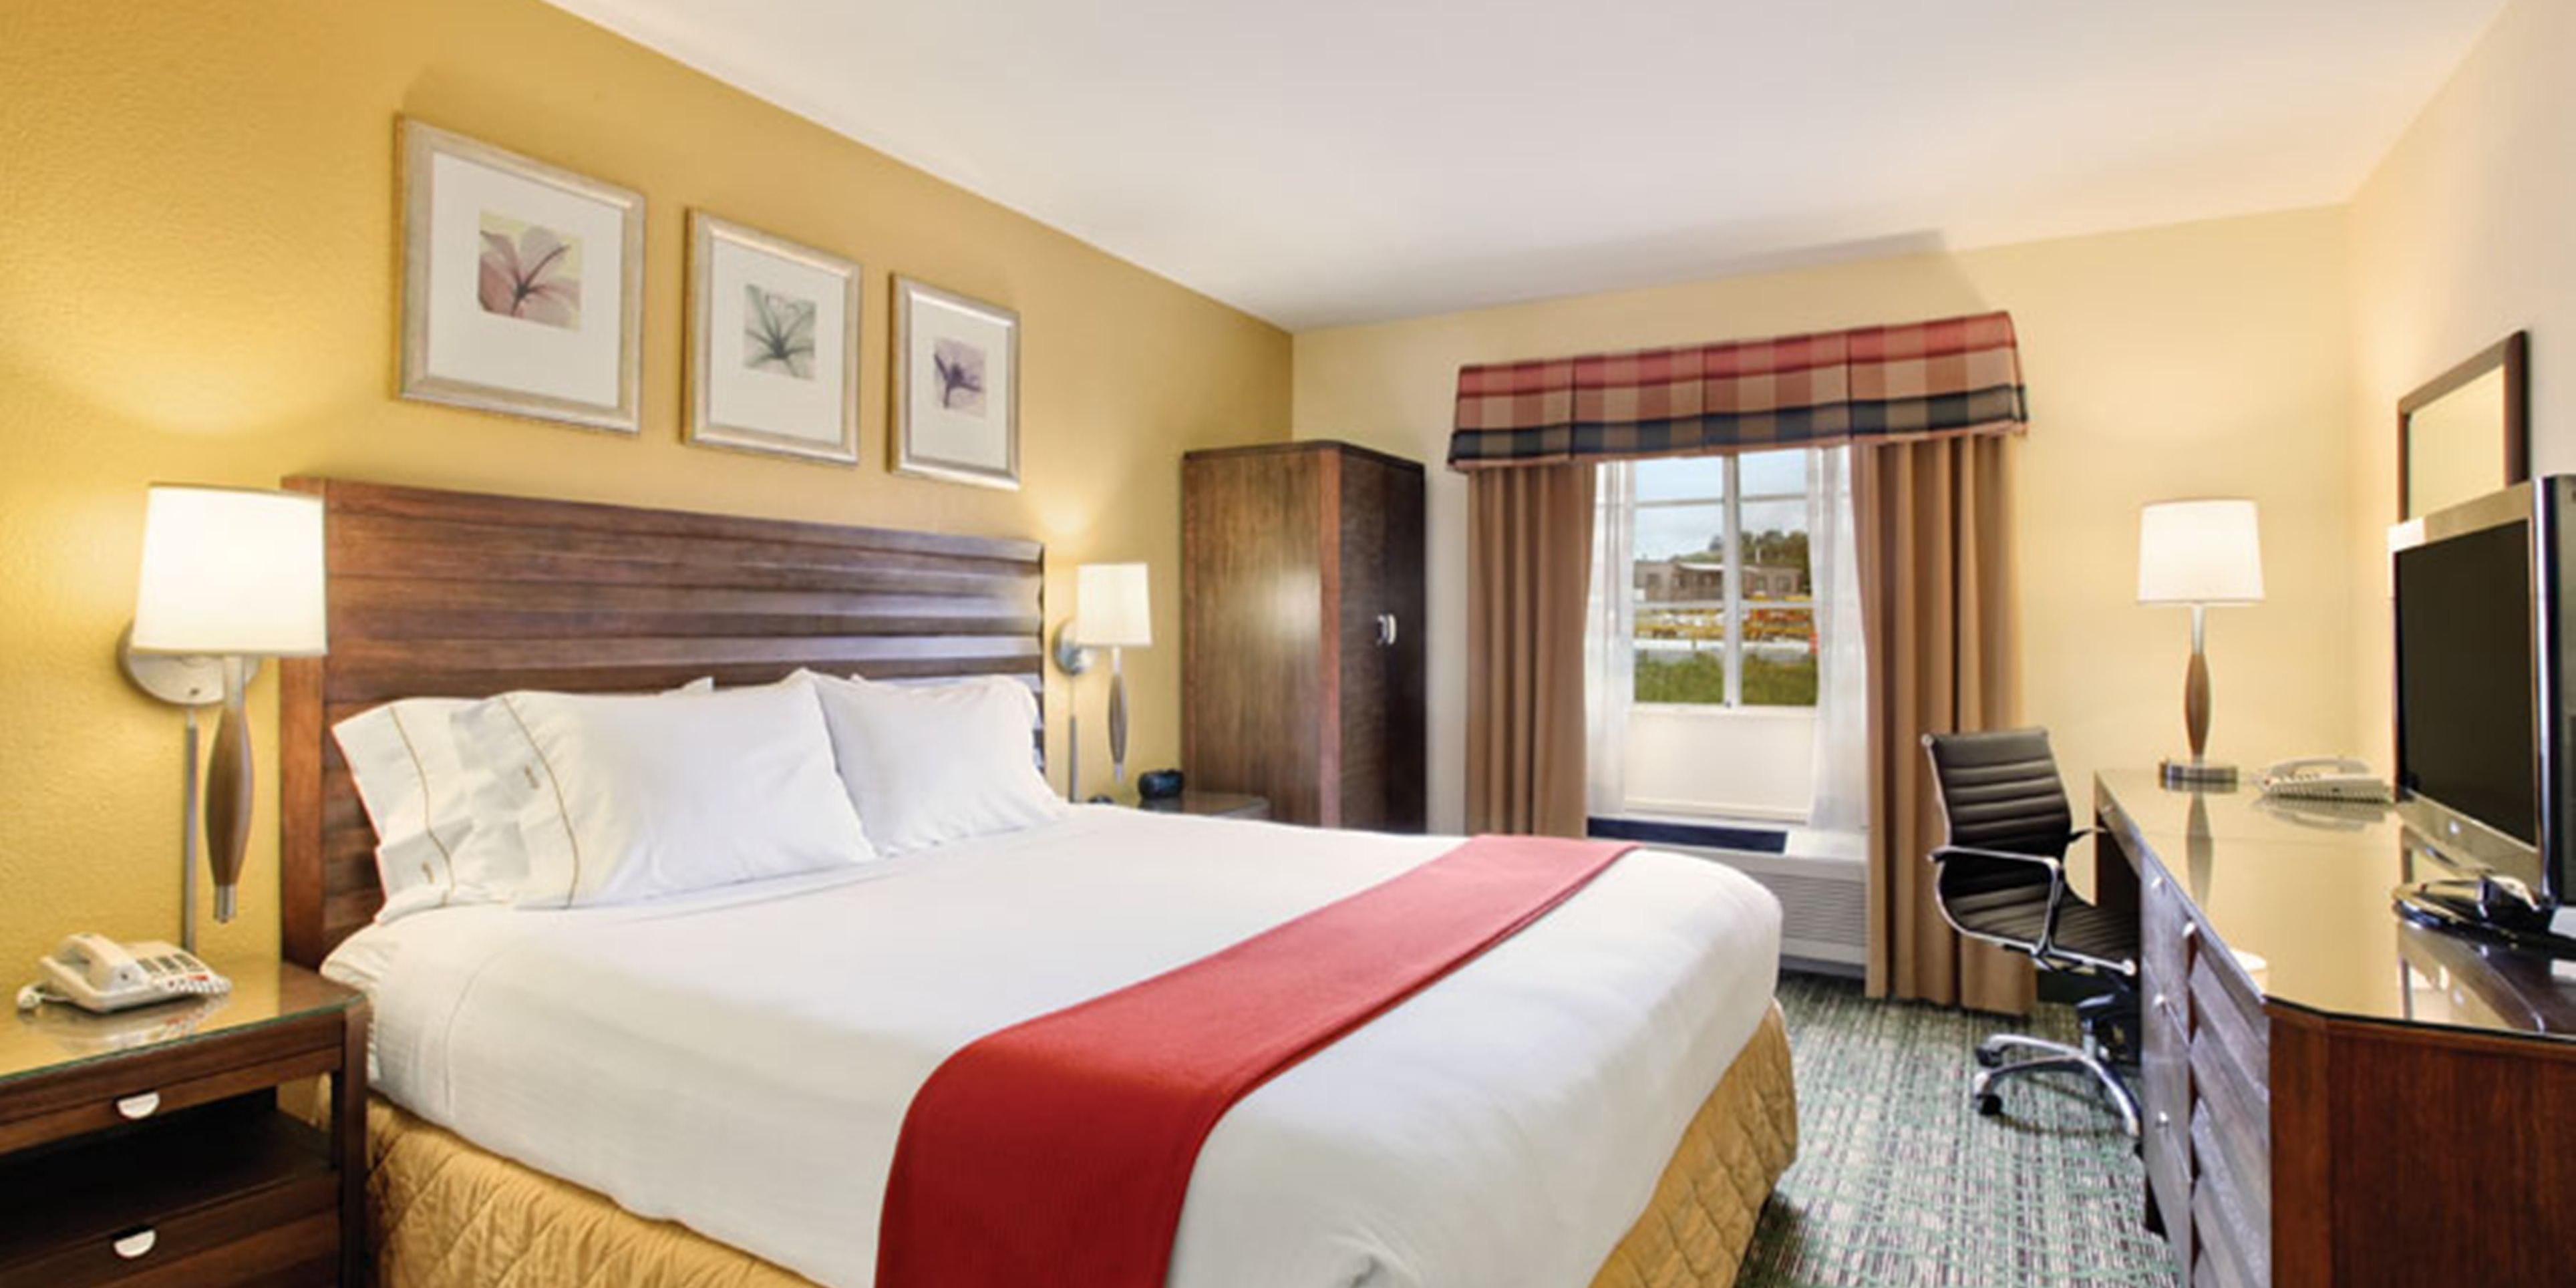 3 Bedroom Hotels In San Diego Ca Bedroom Review Design